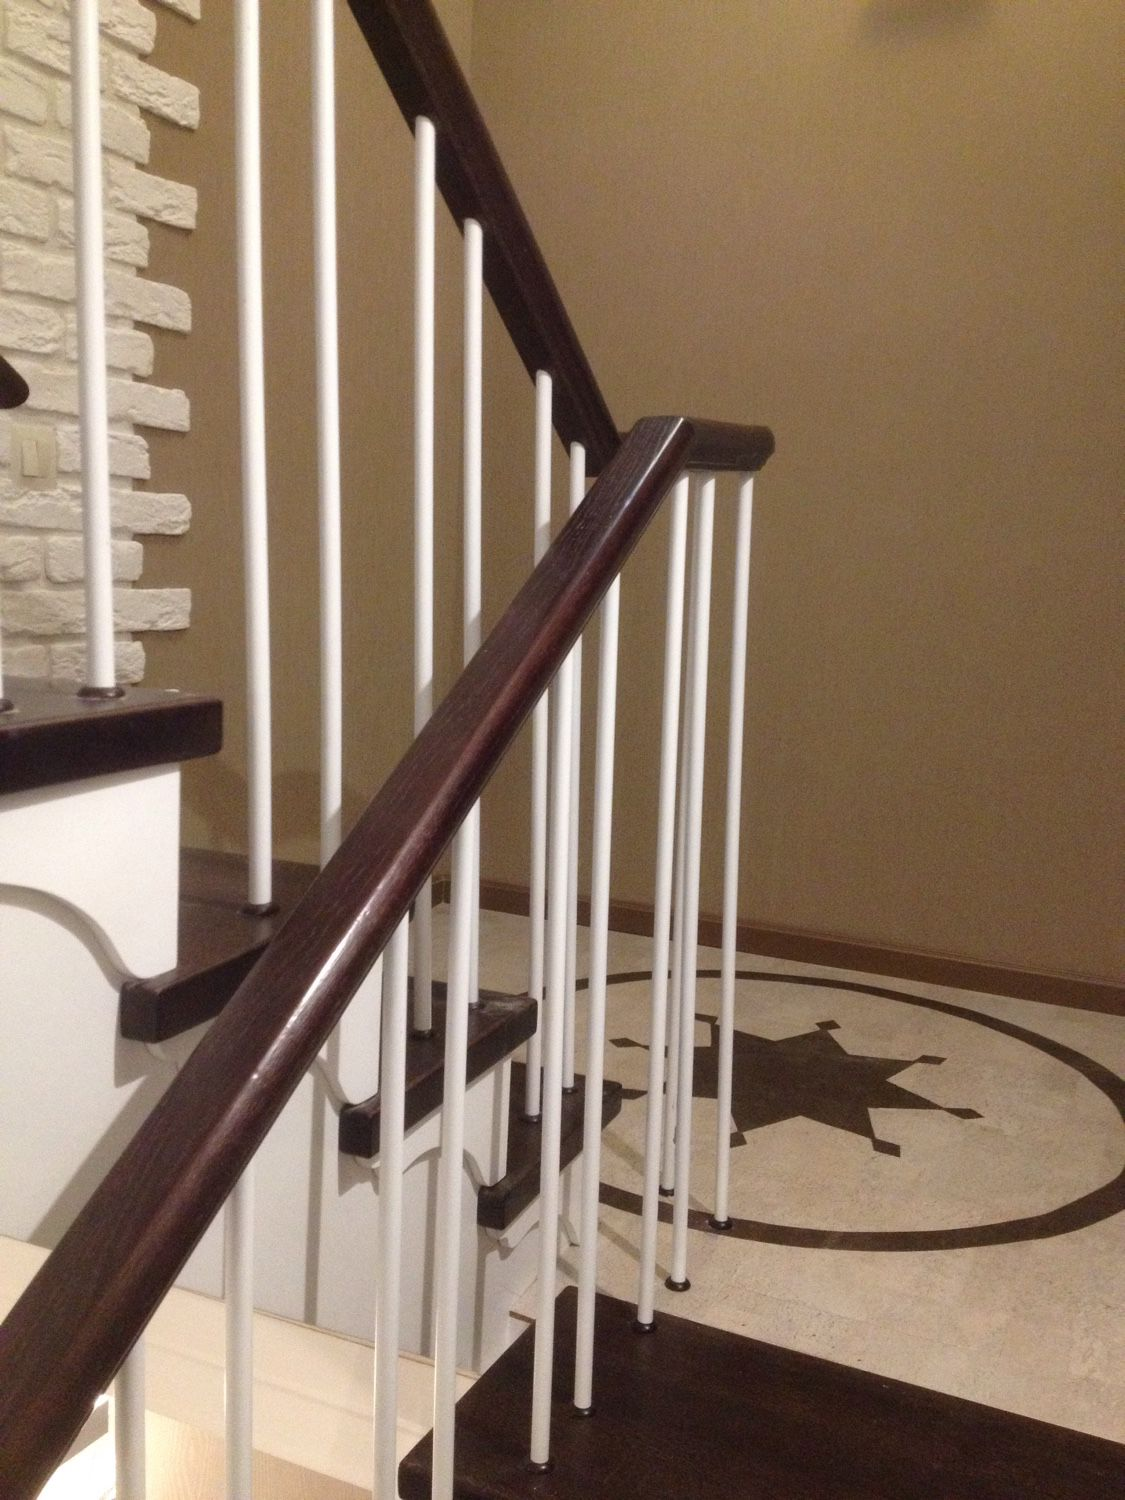 Staircase in a modern style with oak treads, white balusters and handrail. Made of wood in my project.